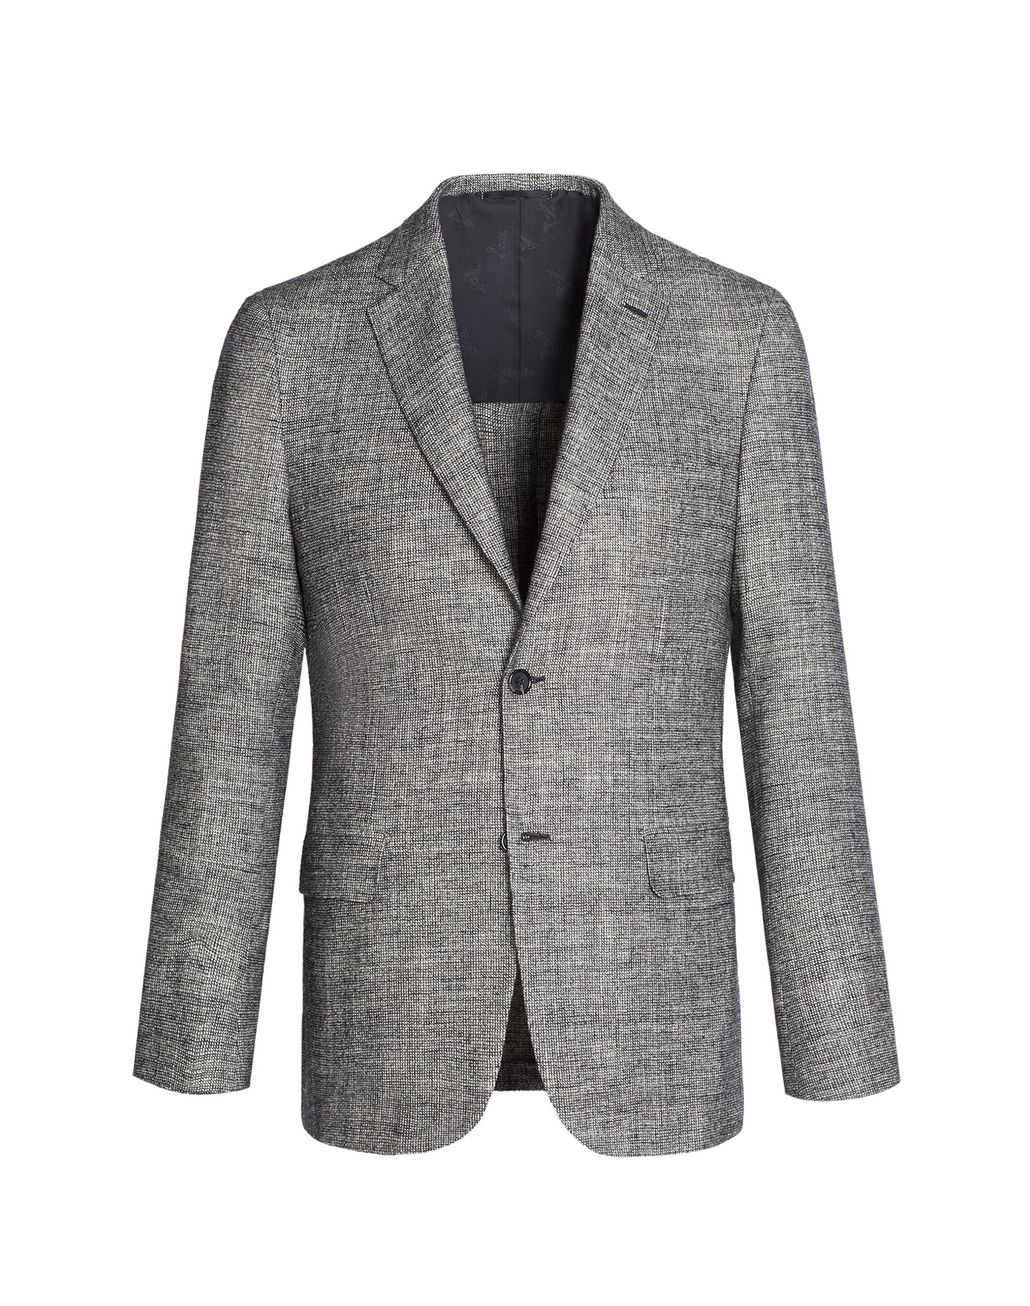 BRIONI Grey and White Ravello Jacket Jackets U f